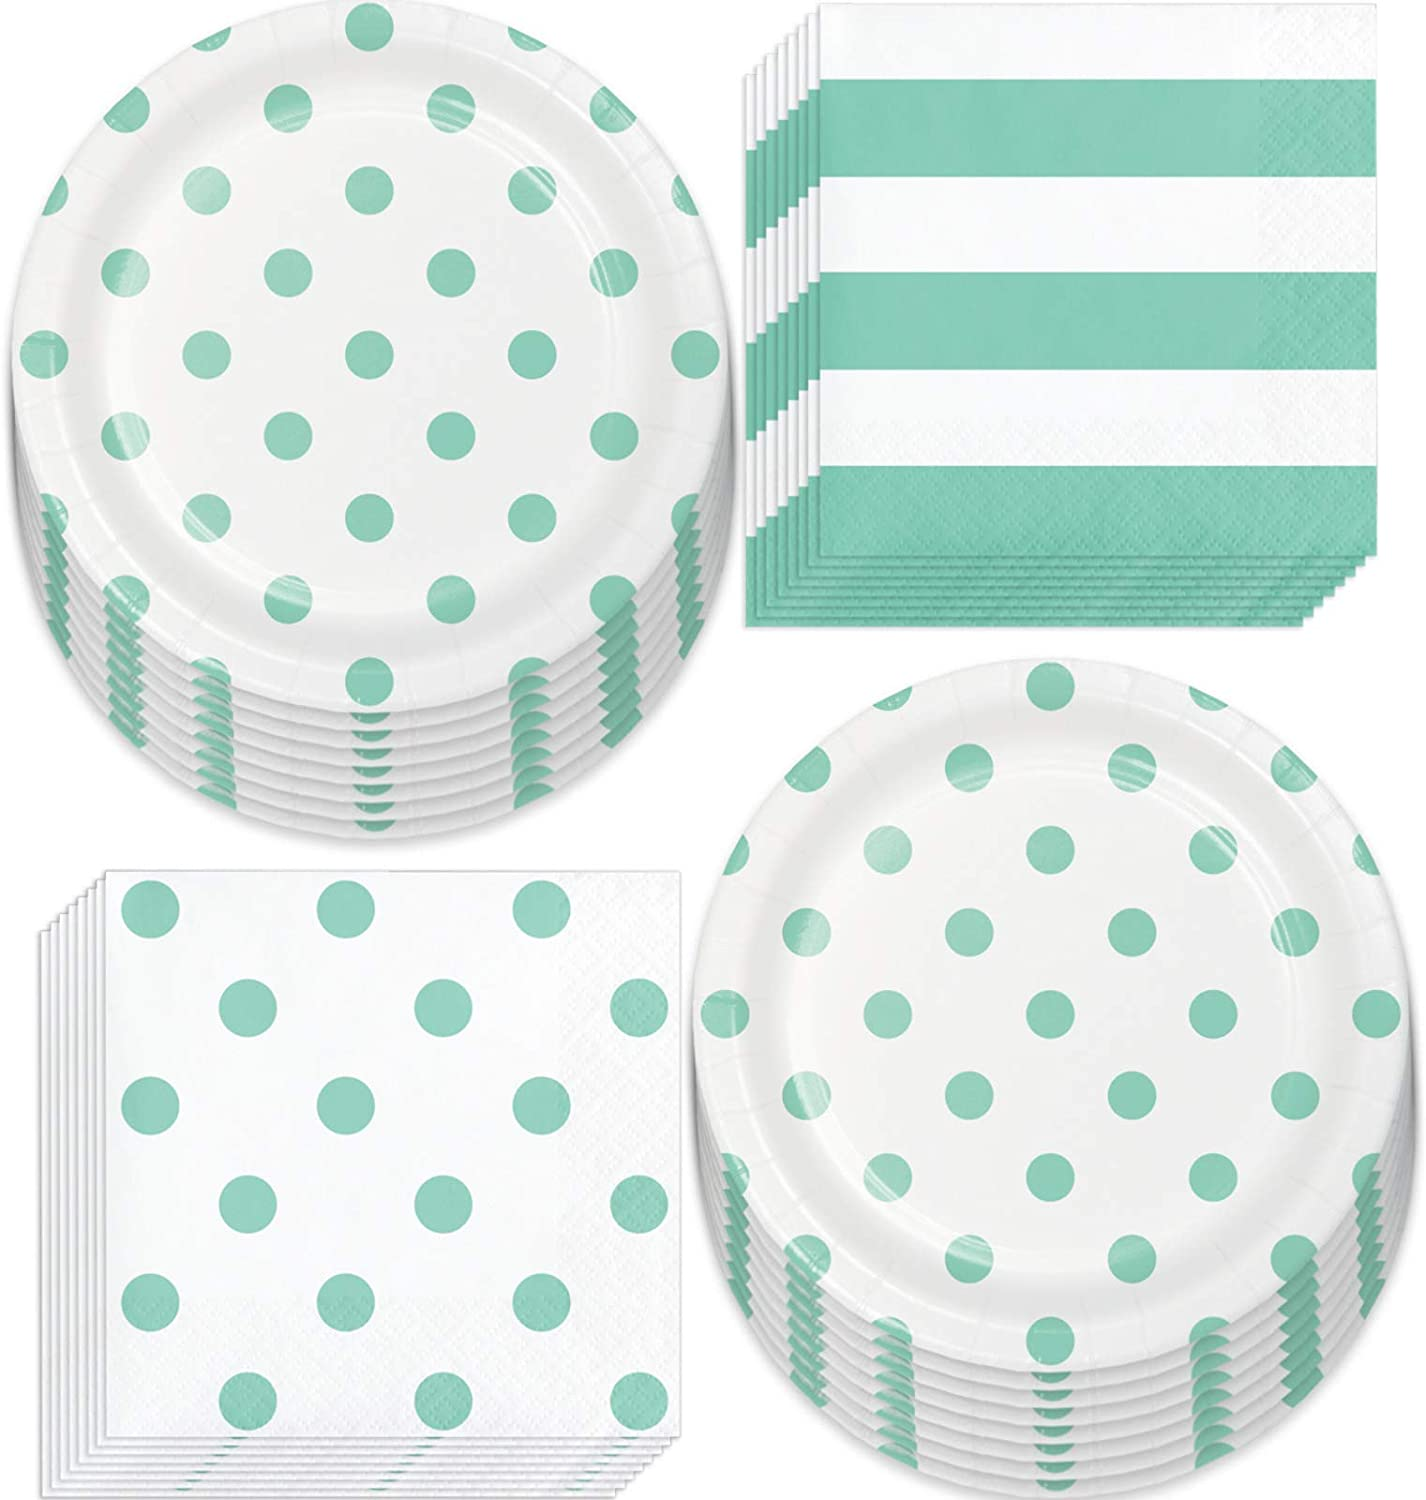 Mint Party Supplies - Polka Dots and Stripes Fresh Mint Paper Dessert Plates and Beverage Napkins (Serves 16)